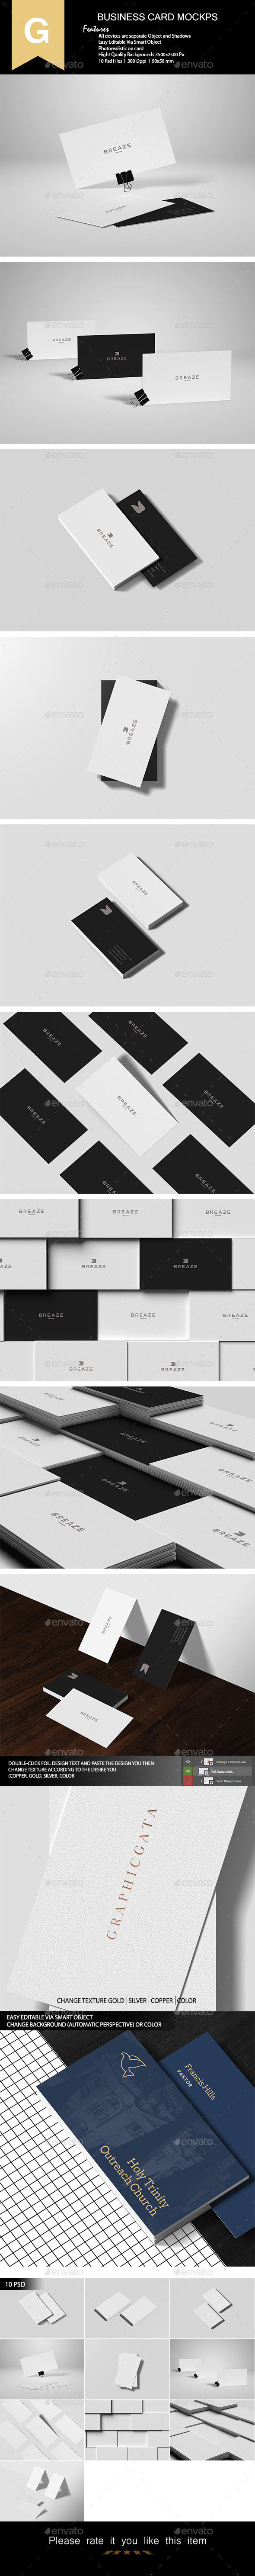 Realistic Business Card Mock-Up - Product Mock-Ups Graphics